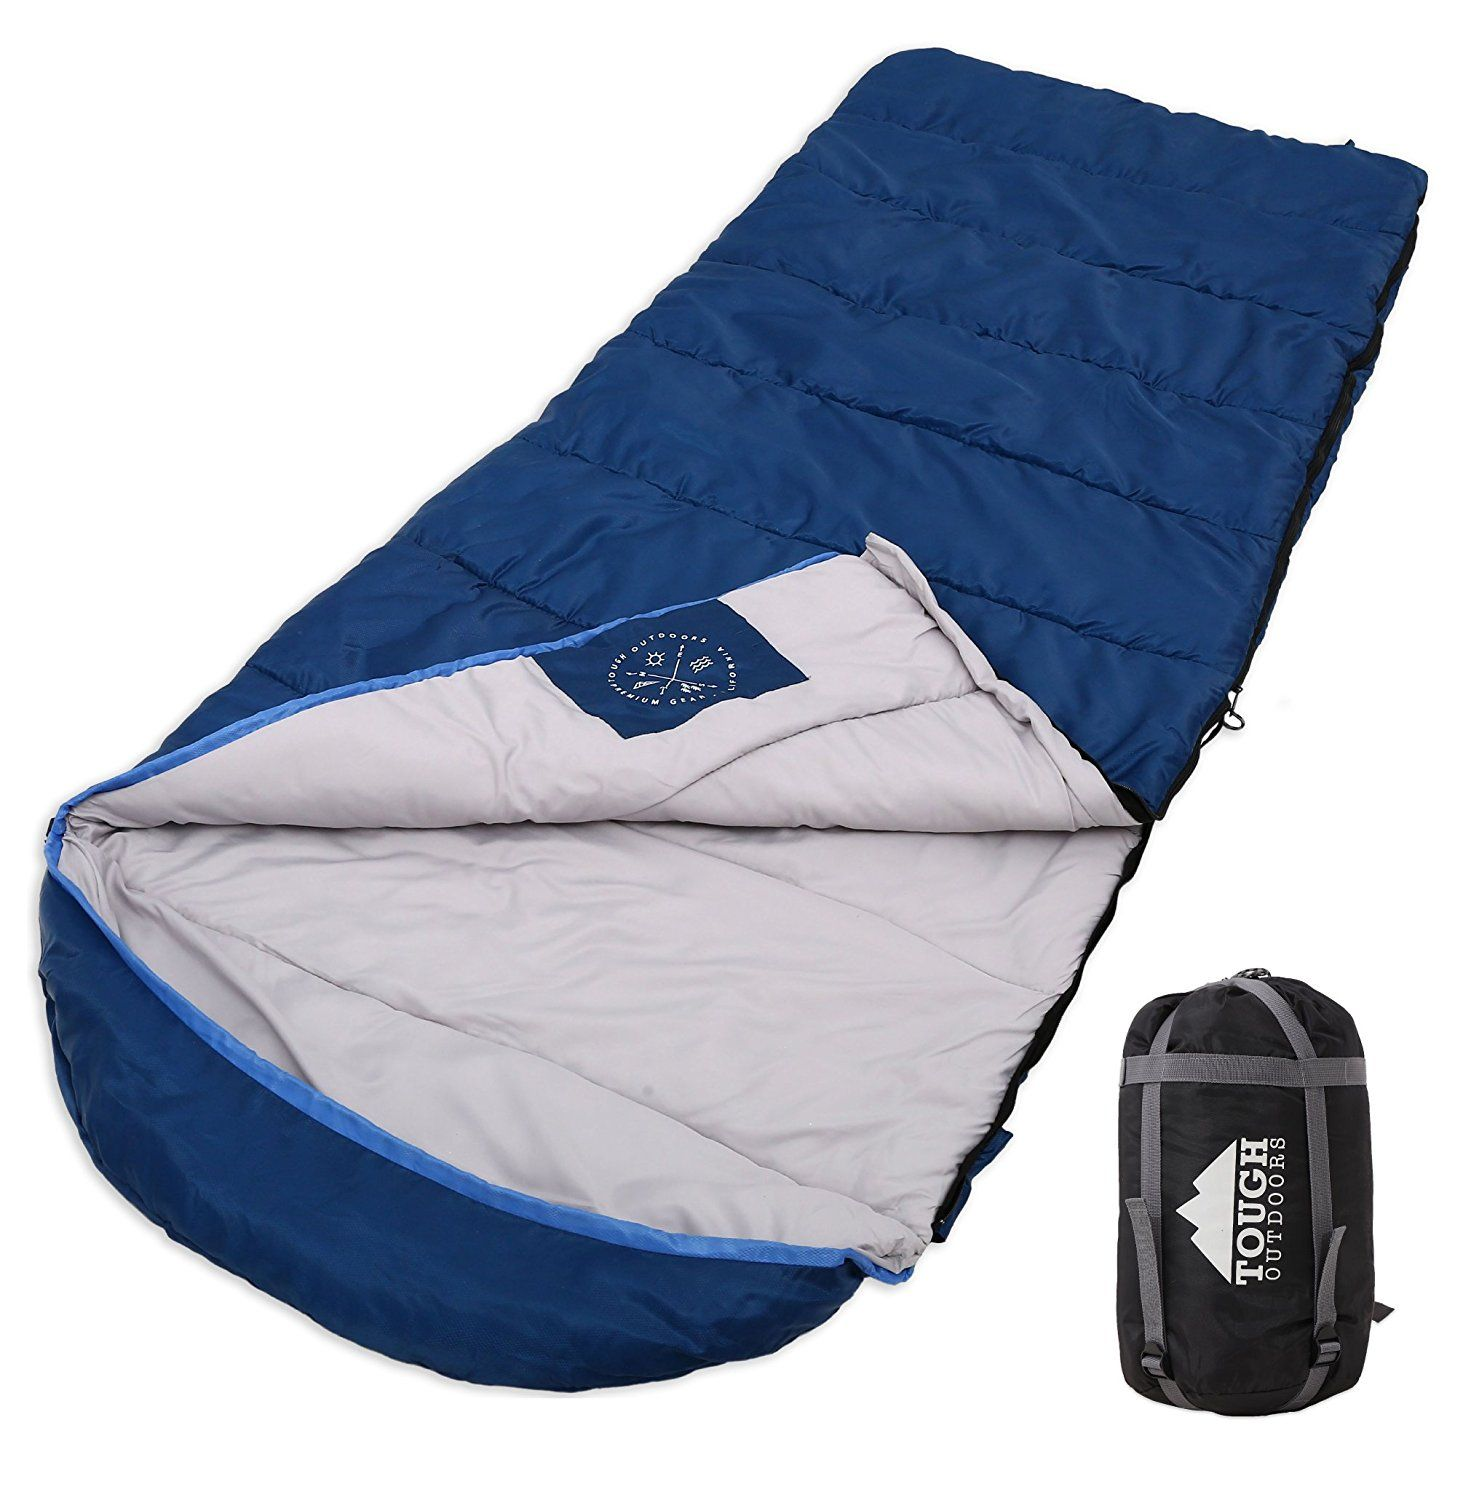 low priced d1dc7 d22d3 PERFECT FOR THE 5-BILLION STAR HOTEL EXPERIENCE: Cozy up in ...